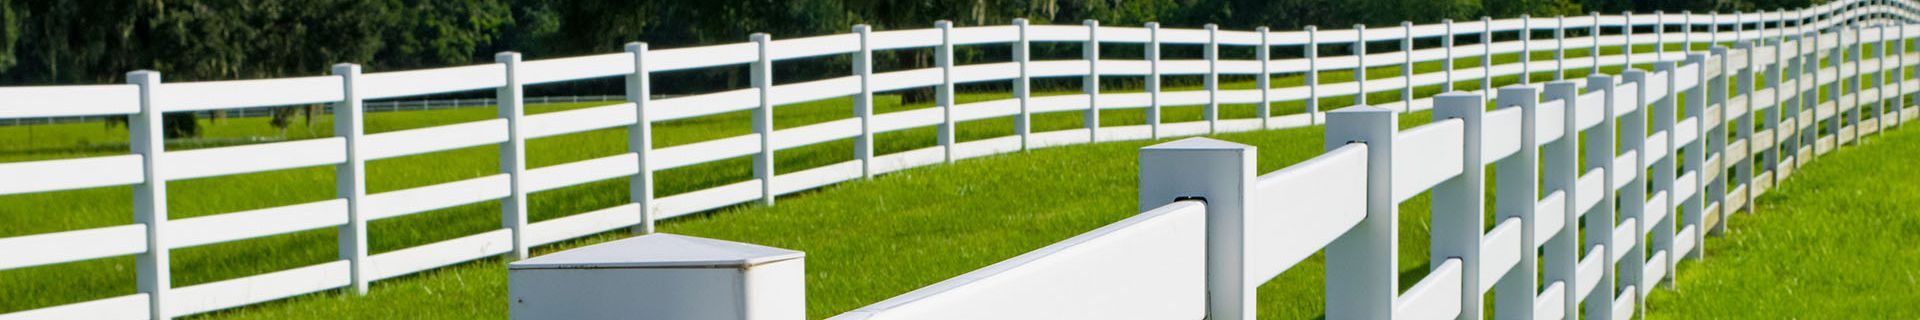 Paddock with white picket fencing.